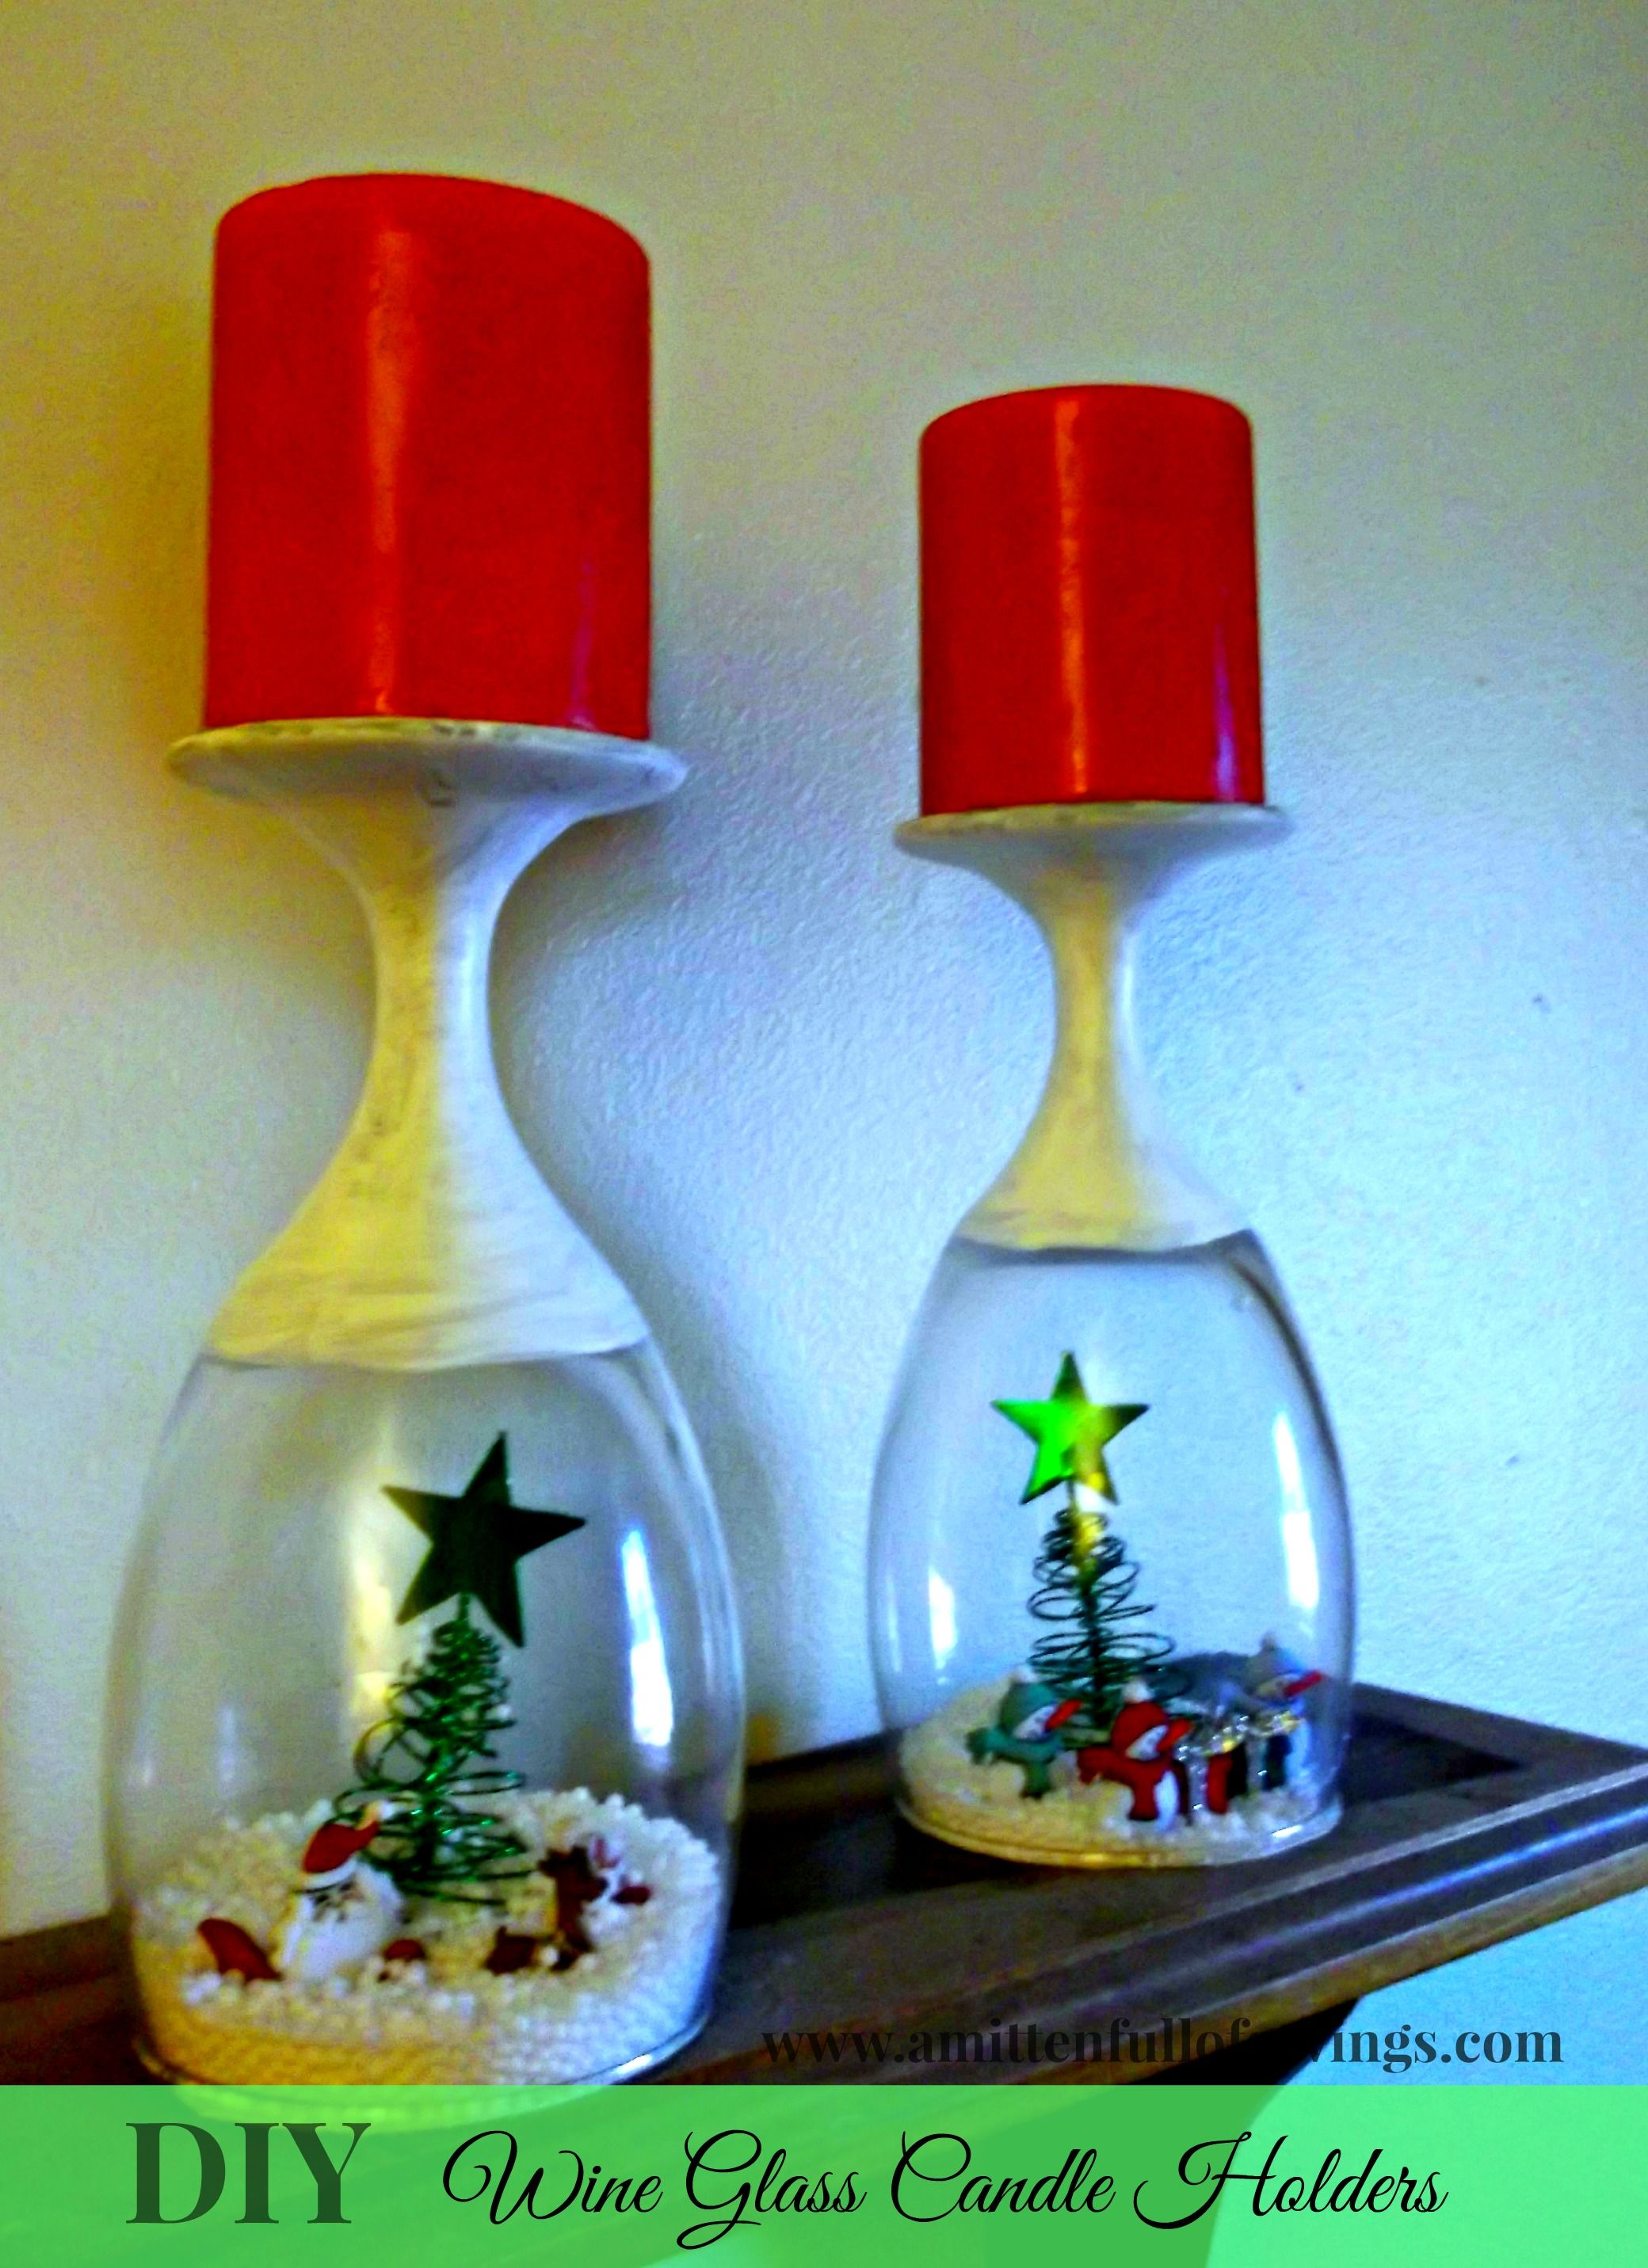 DIY Wine Glass Candle Holders Diy wine glass candle